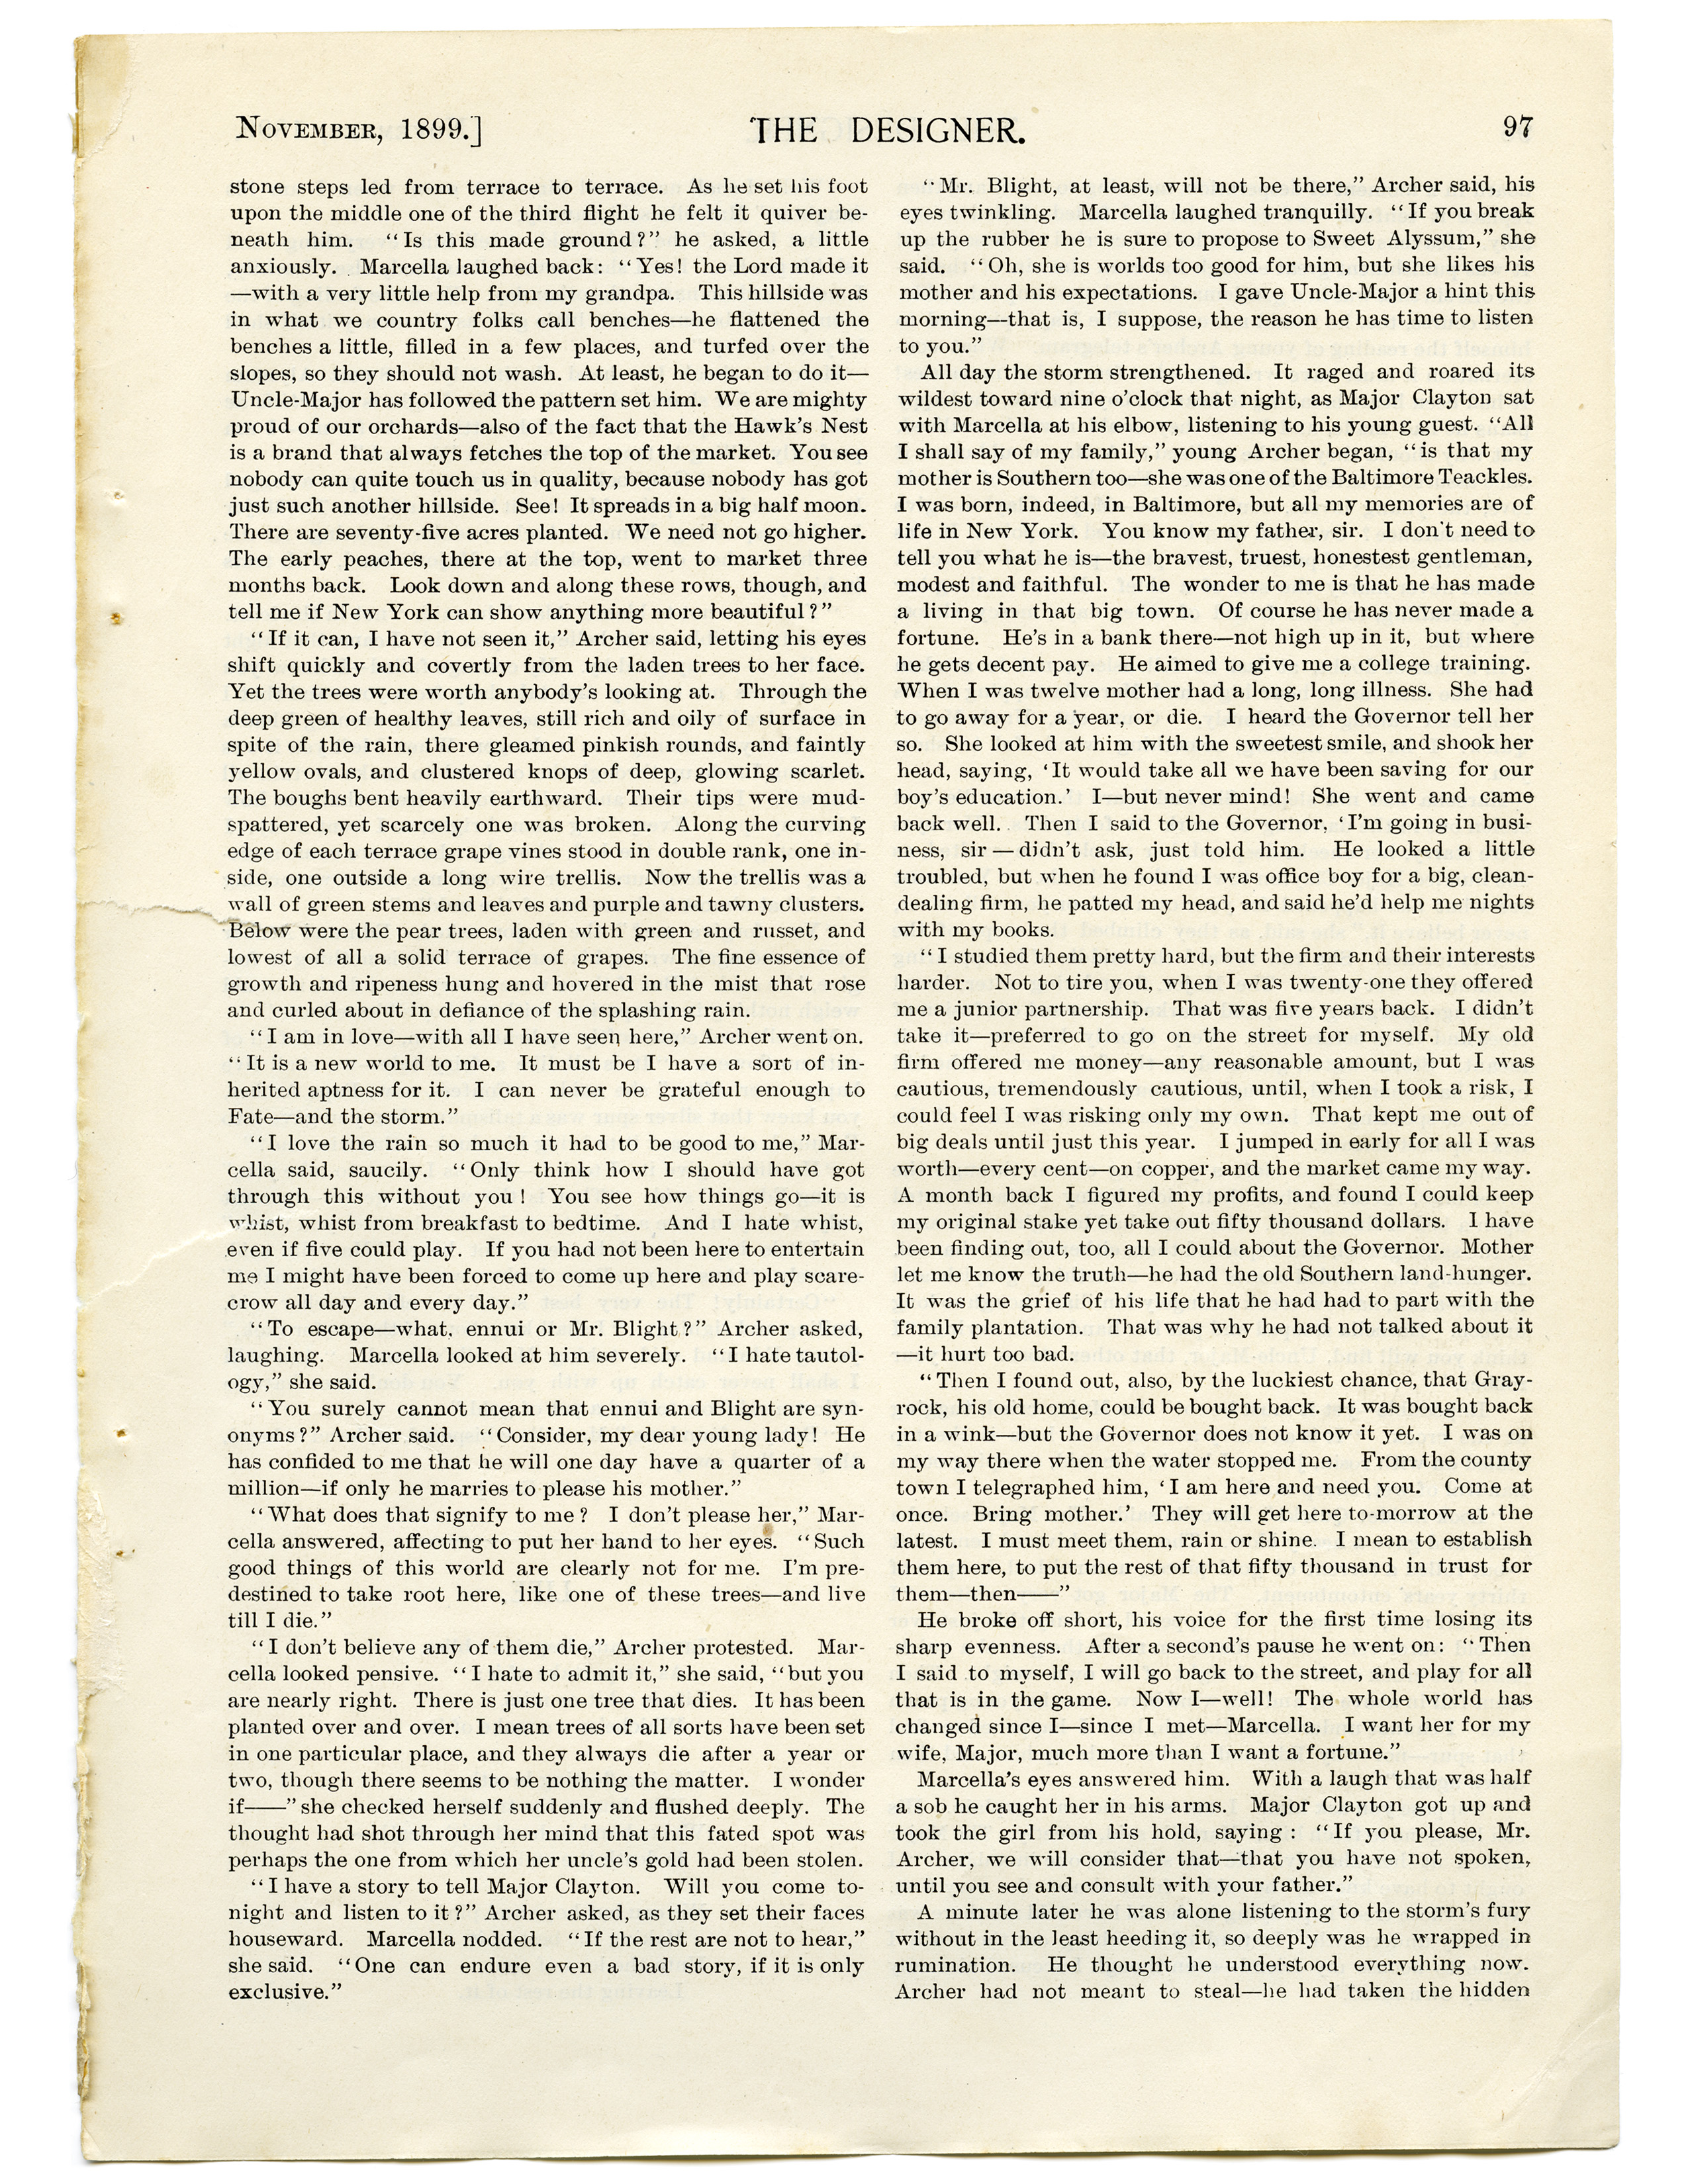 Free Vintage Graphic Full Page of English Text | Old ...